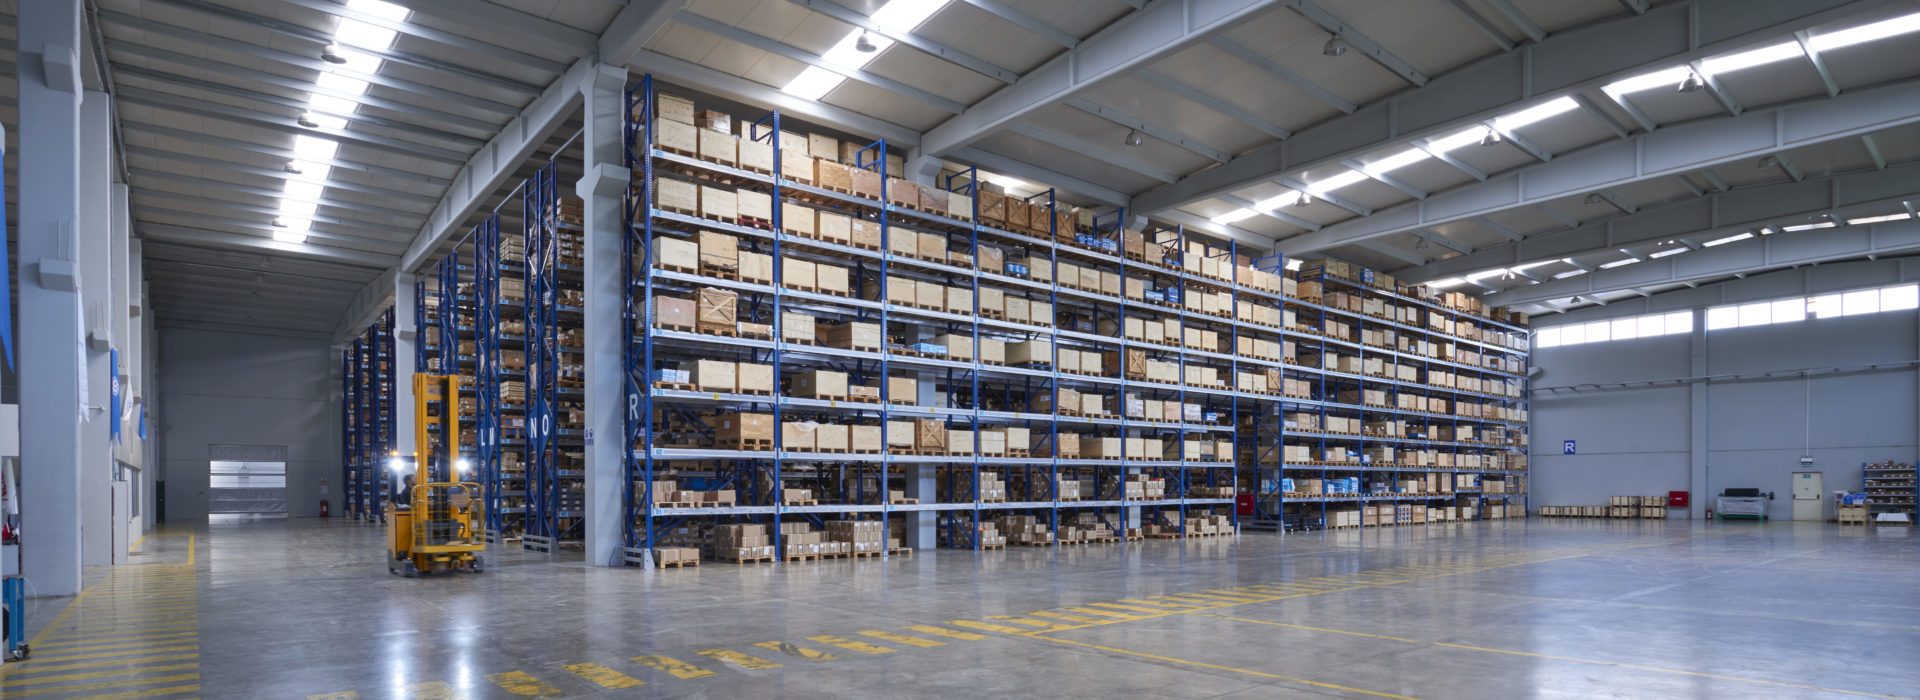 Wholesalers, Distributors, and Warehouse Insurance | Bankers Insurance